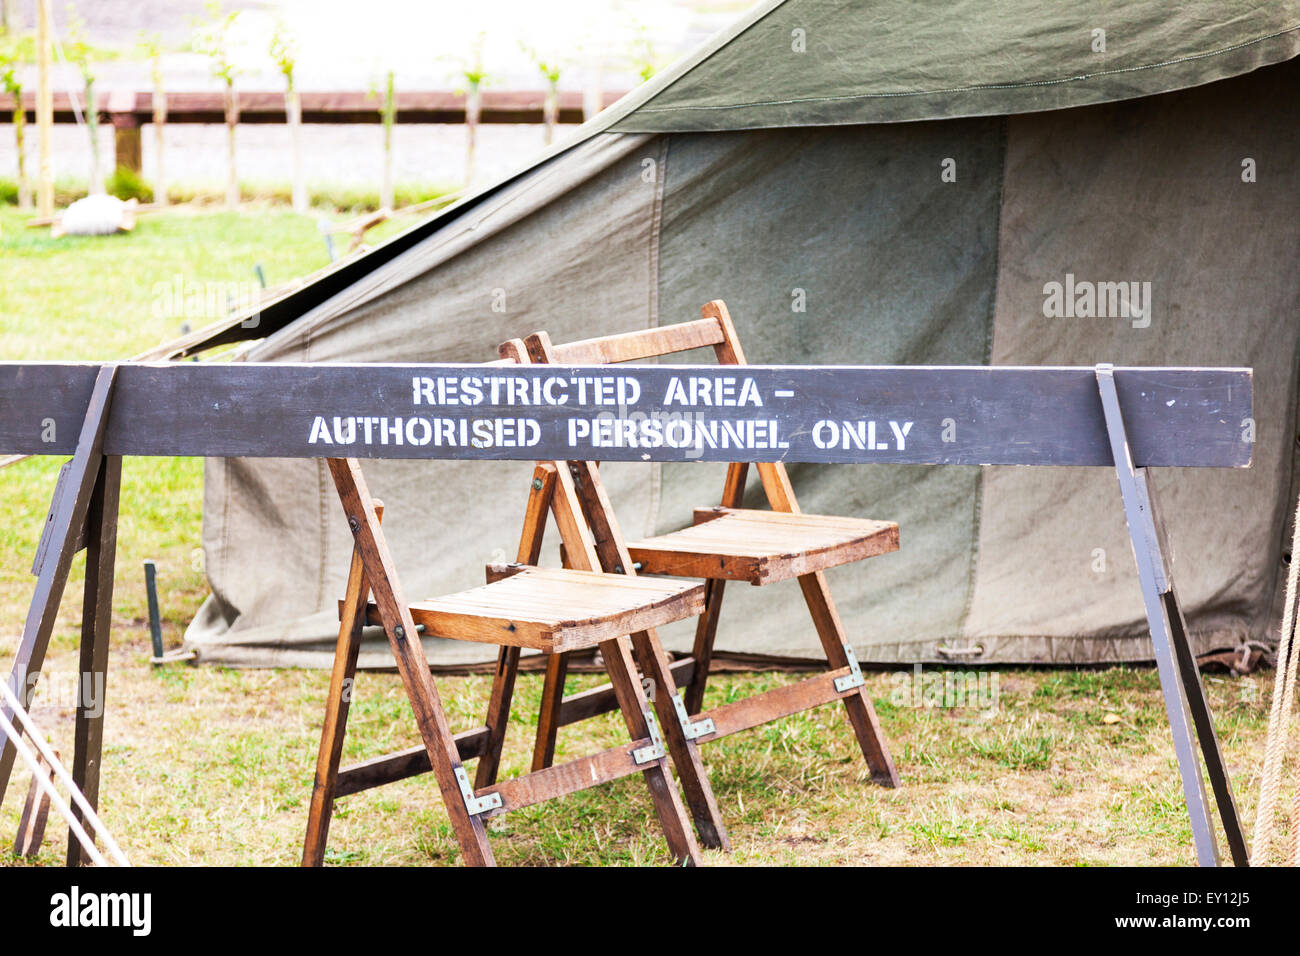 Army restricted area sign authorised personnel only camp blockade warning no entry - Stock Image